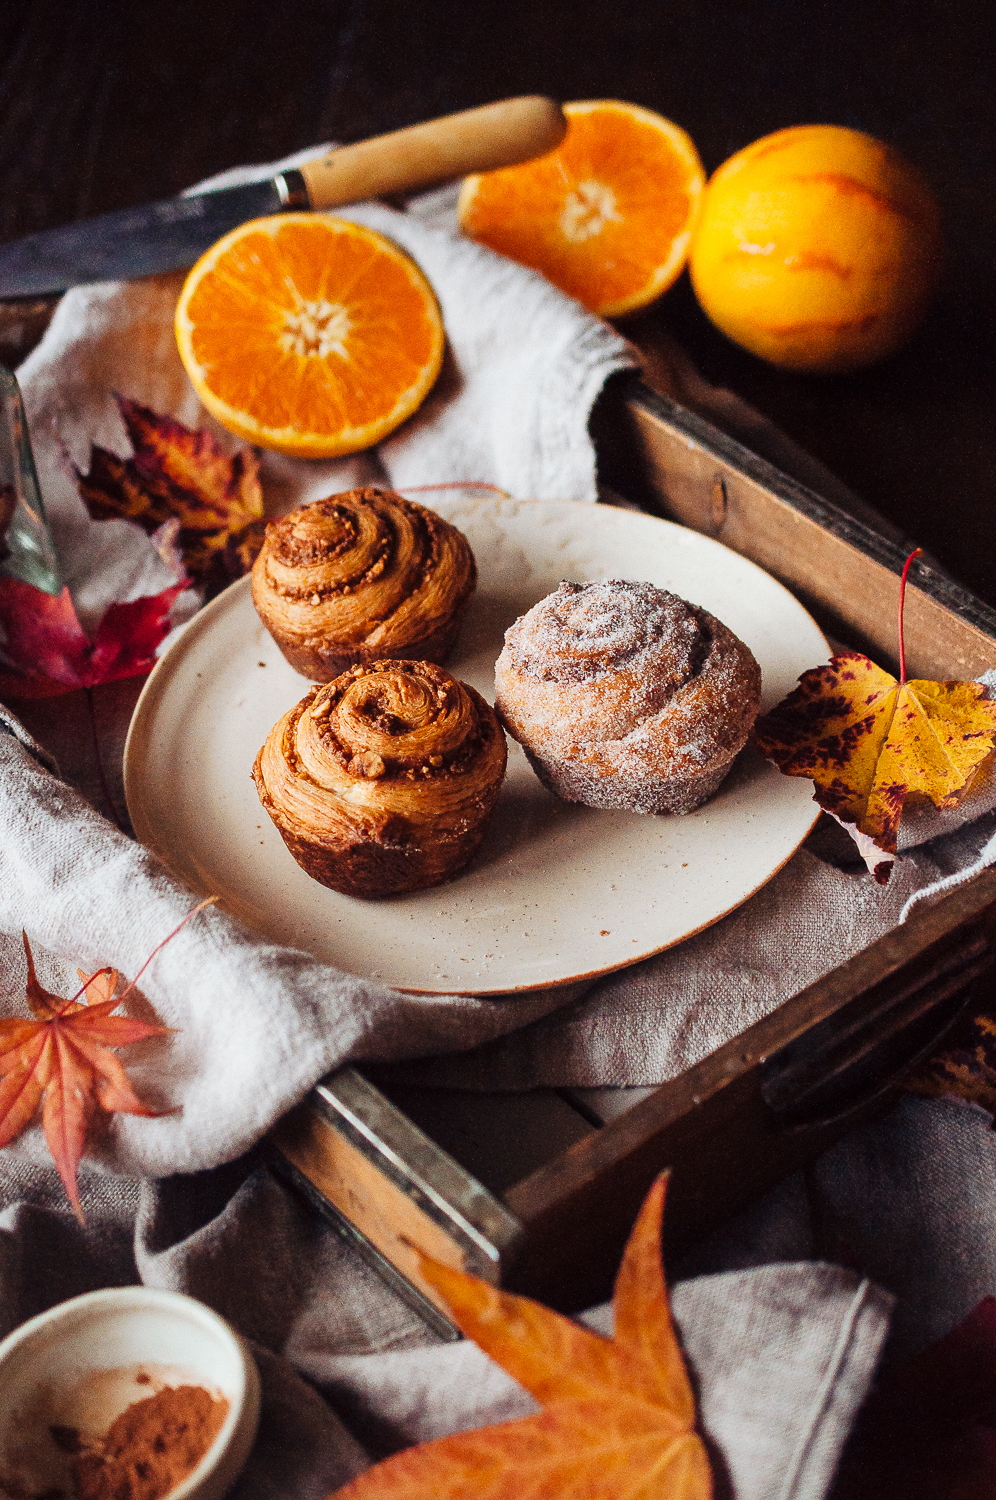 Cinnamon Orange Hazelnut Morning Buns 9.jpg